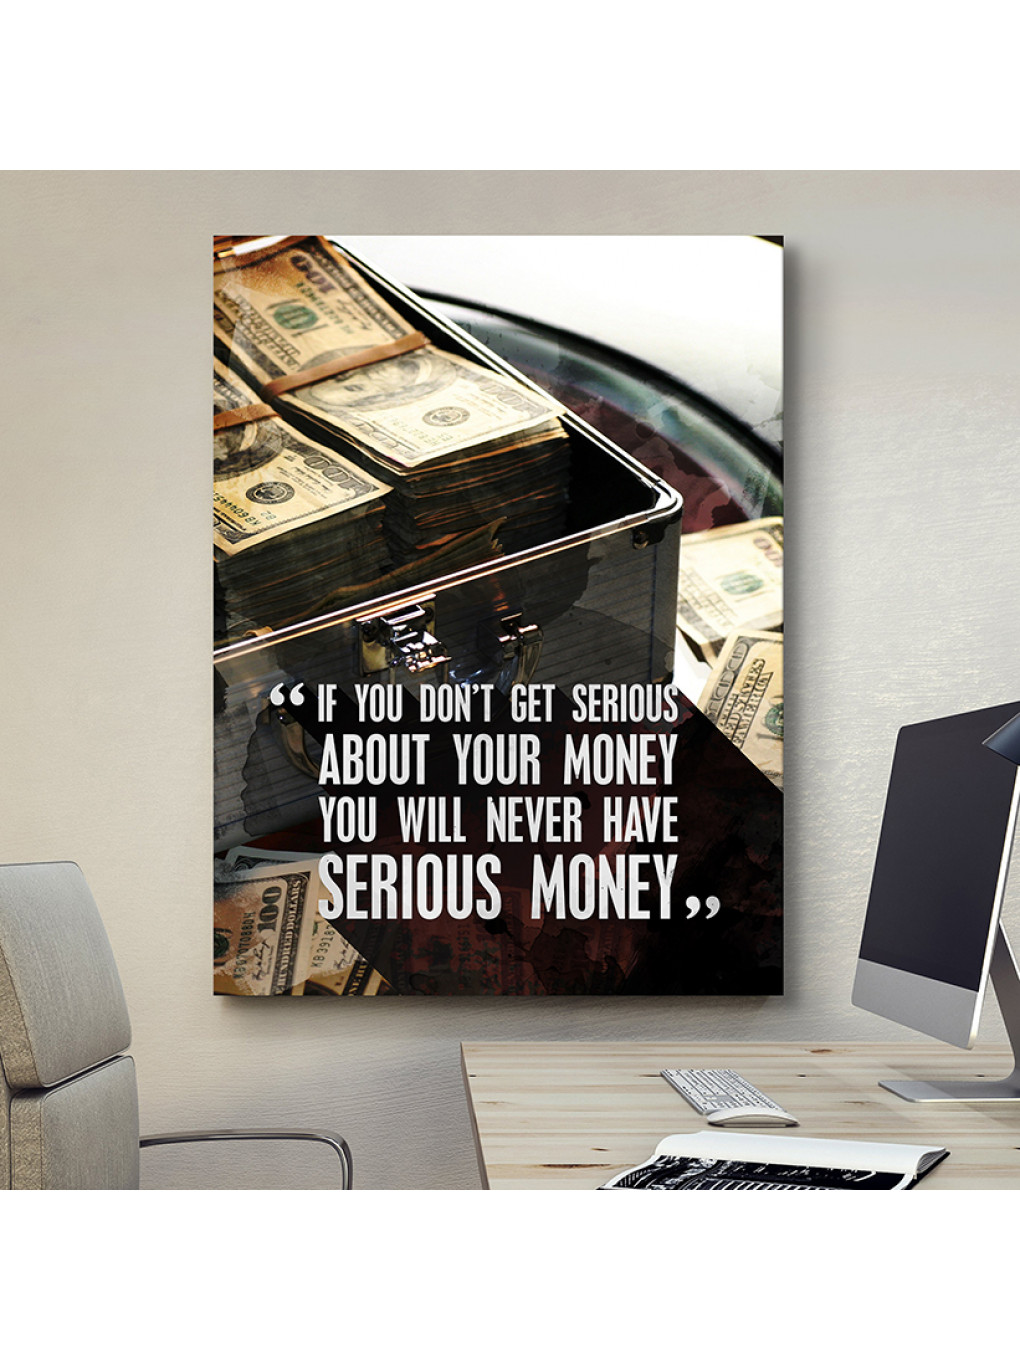 If you don't get serious about your money, you will never have serious money_MNY199_1